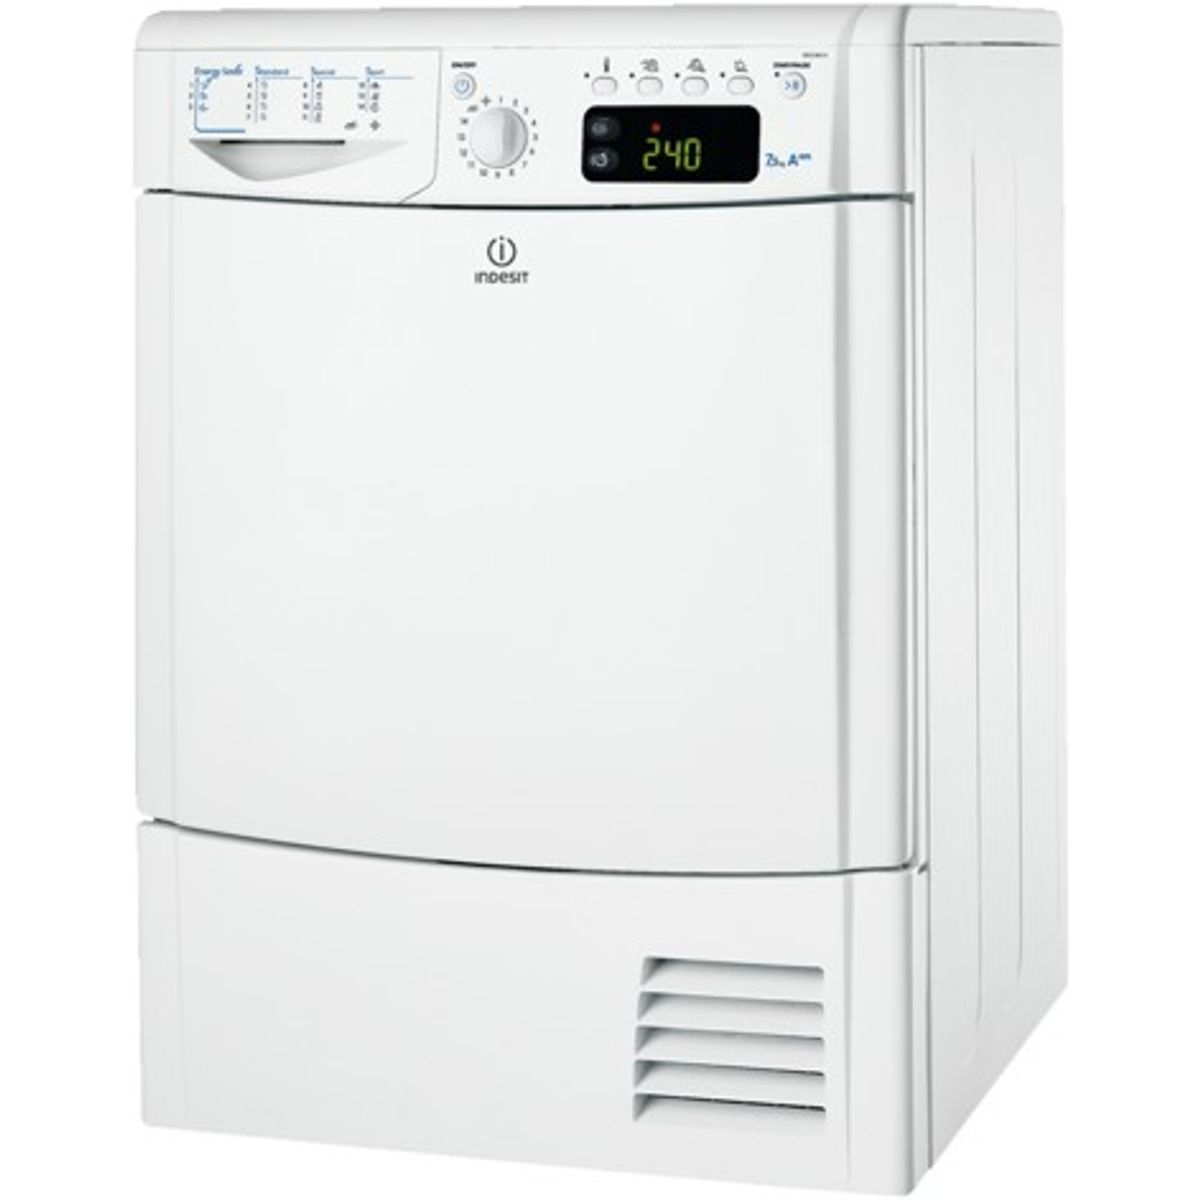 Indesit IDCE 845 A Eco EU